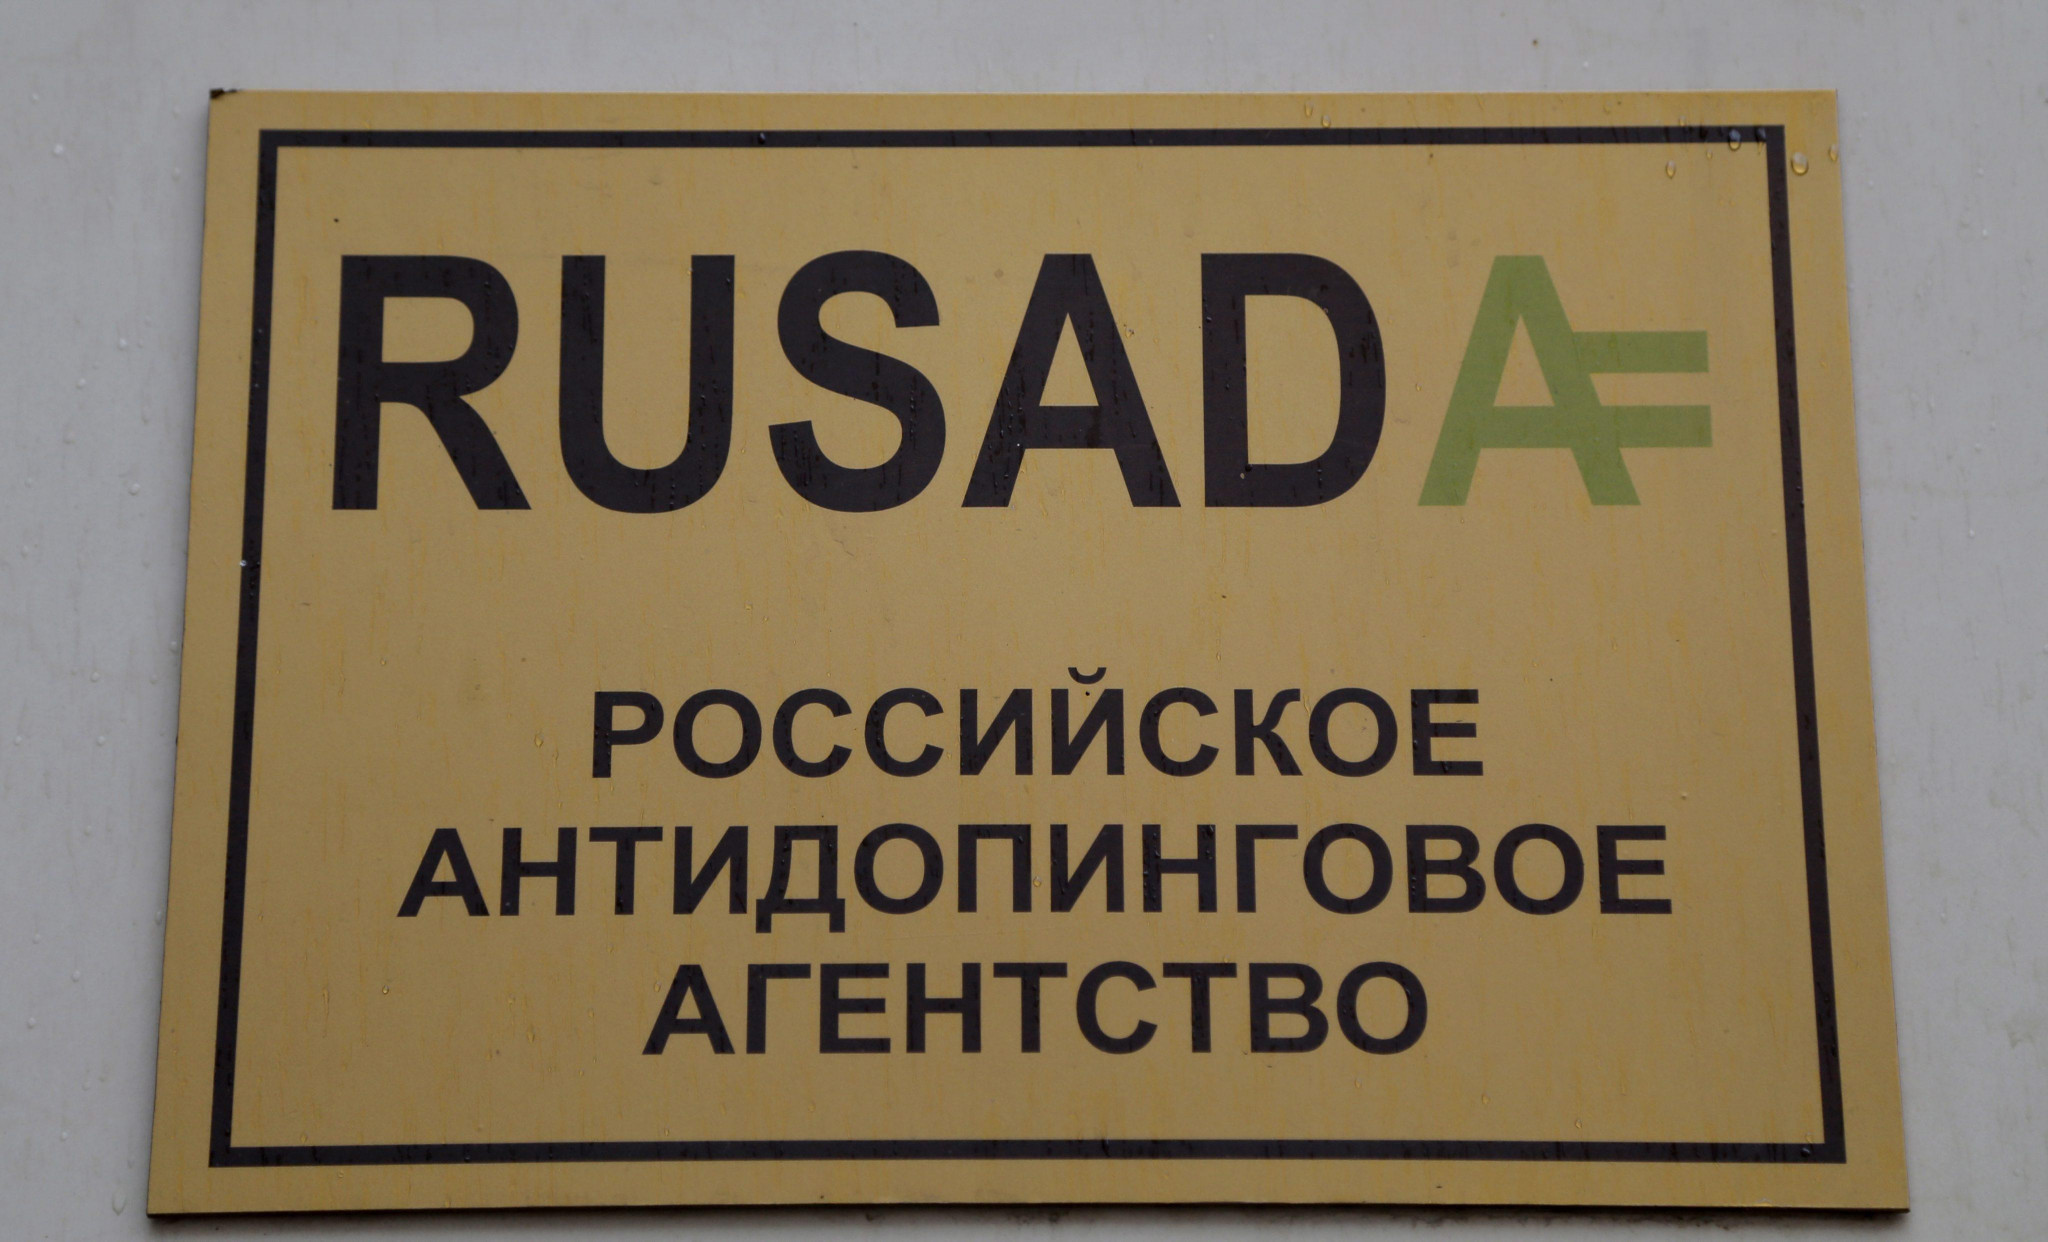 The Russian Anti-Doping Agency was declared non-compliant by WADA in November 2015 ©Getty Images